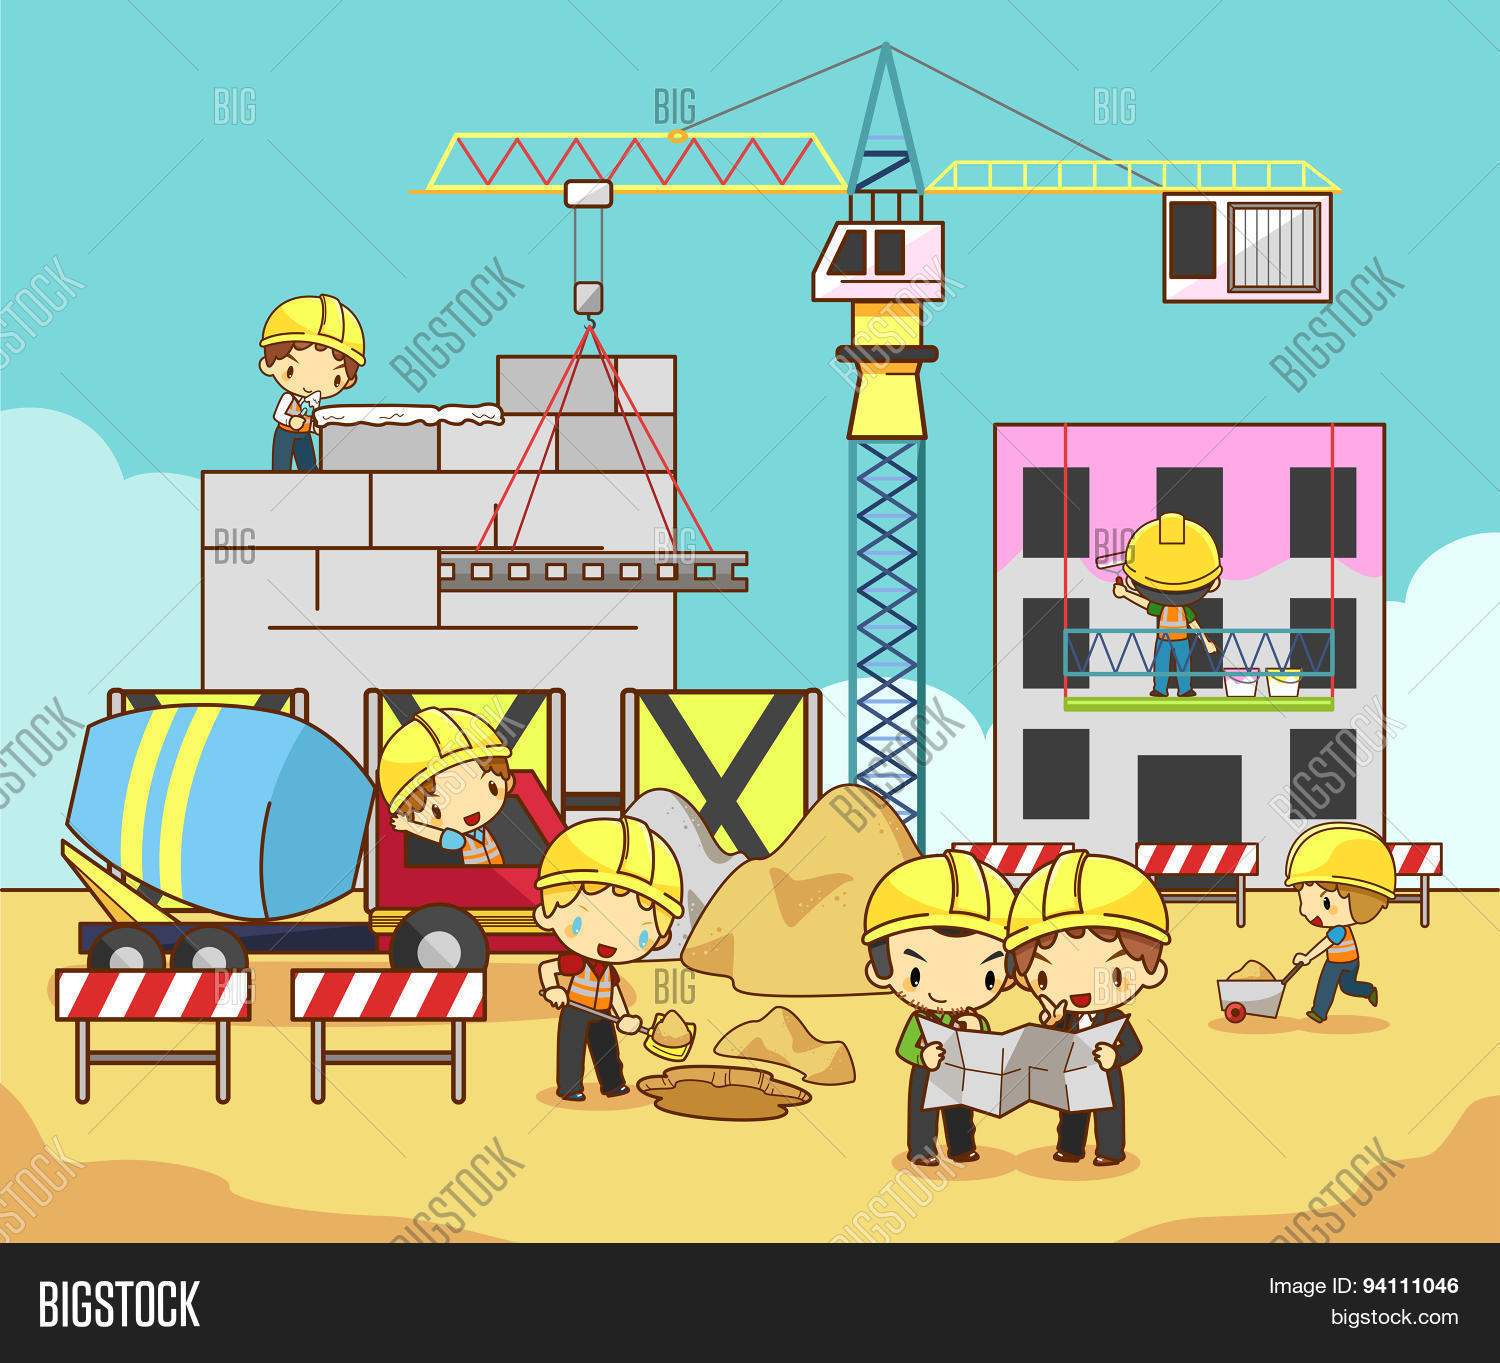 Cartoon children vector photo free trial bigstock for Build a house website